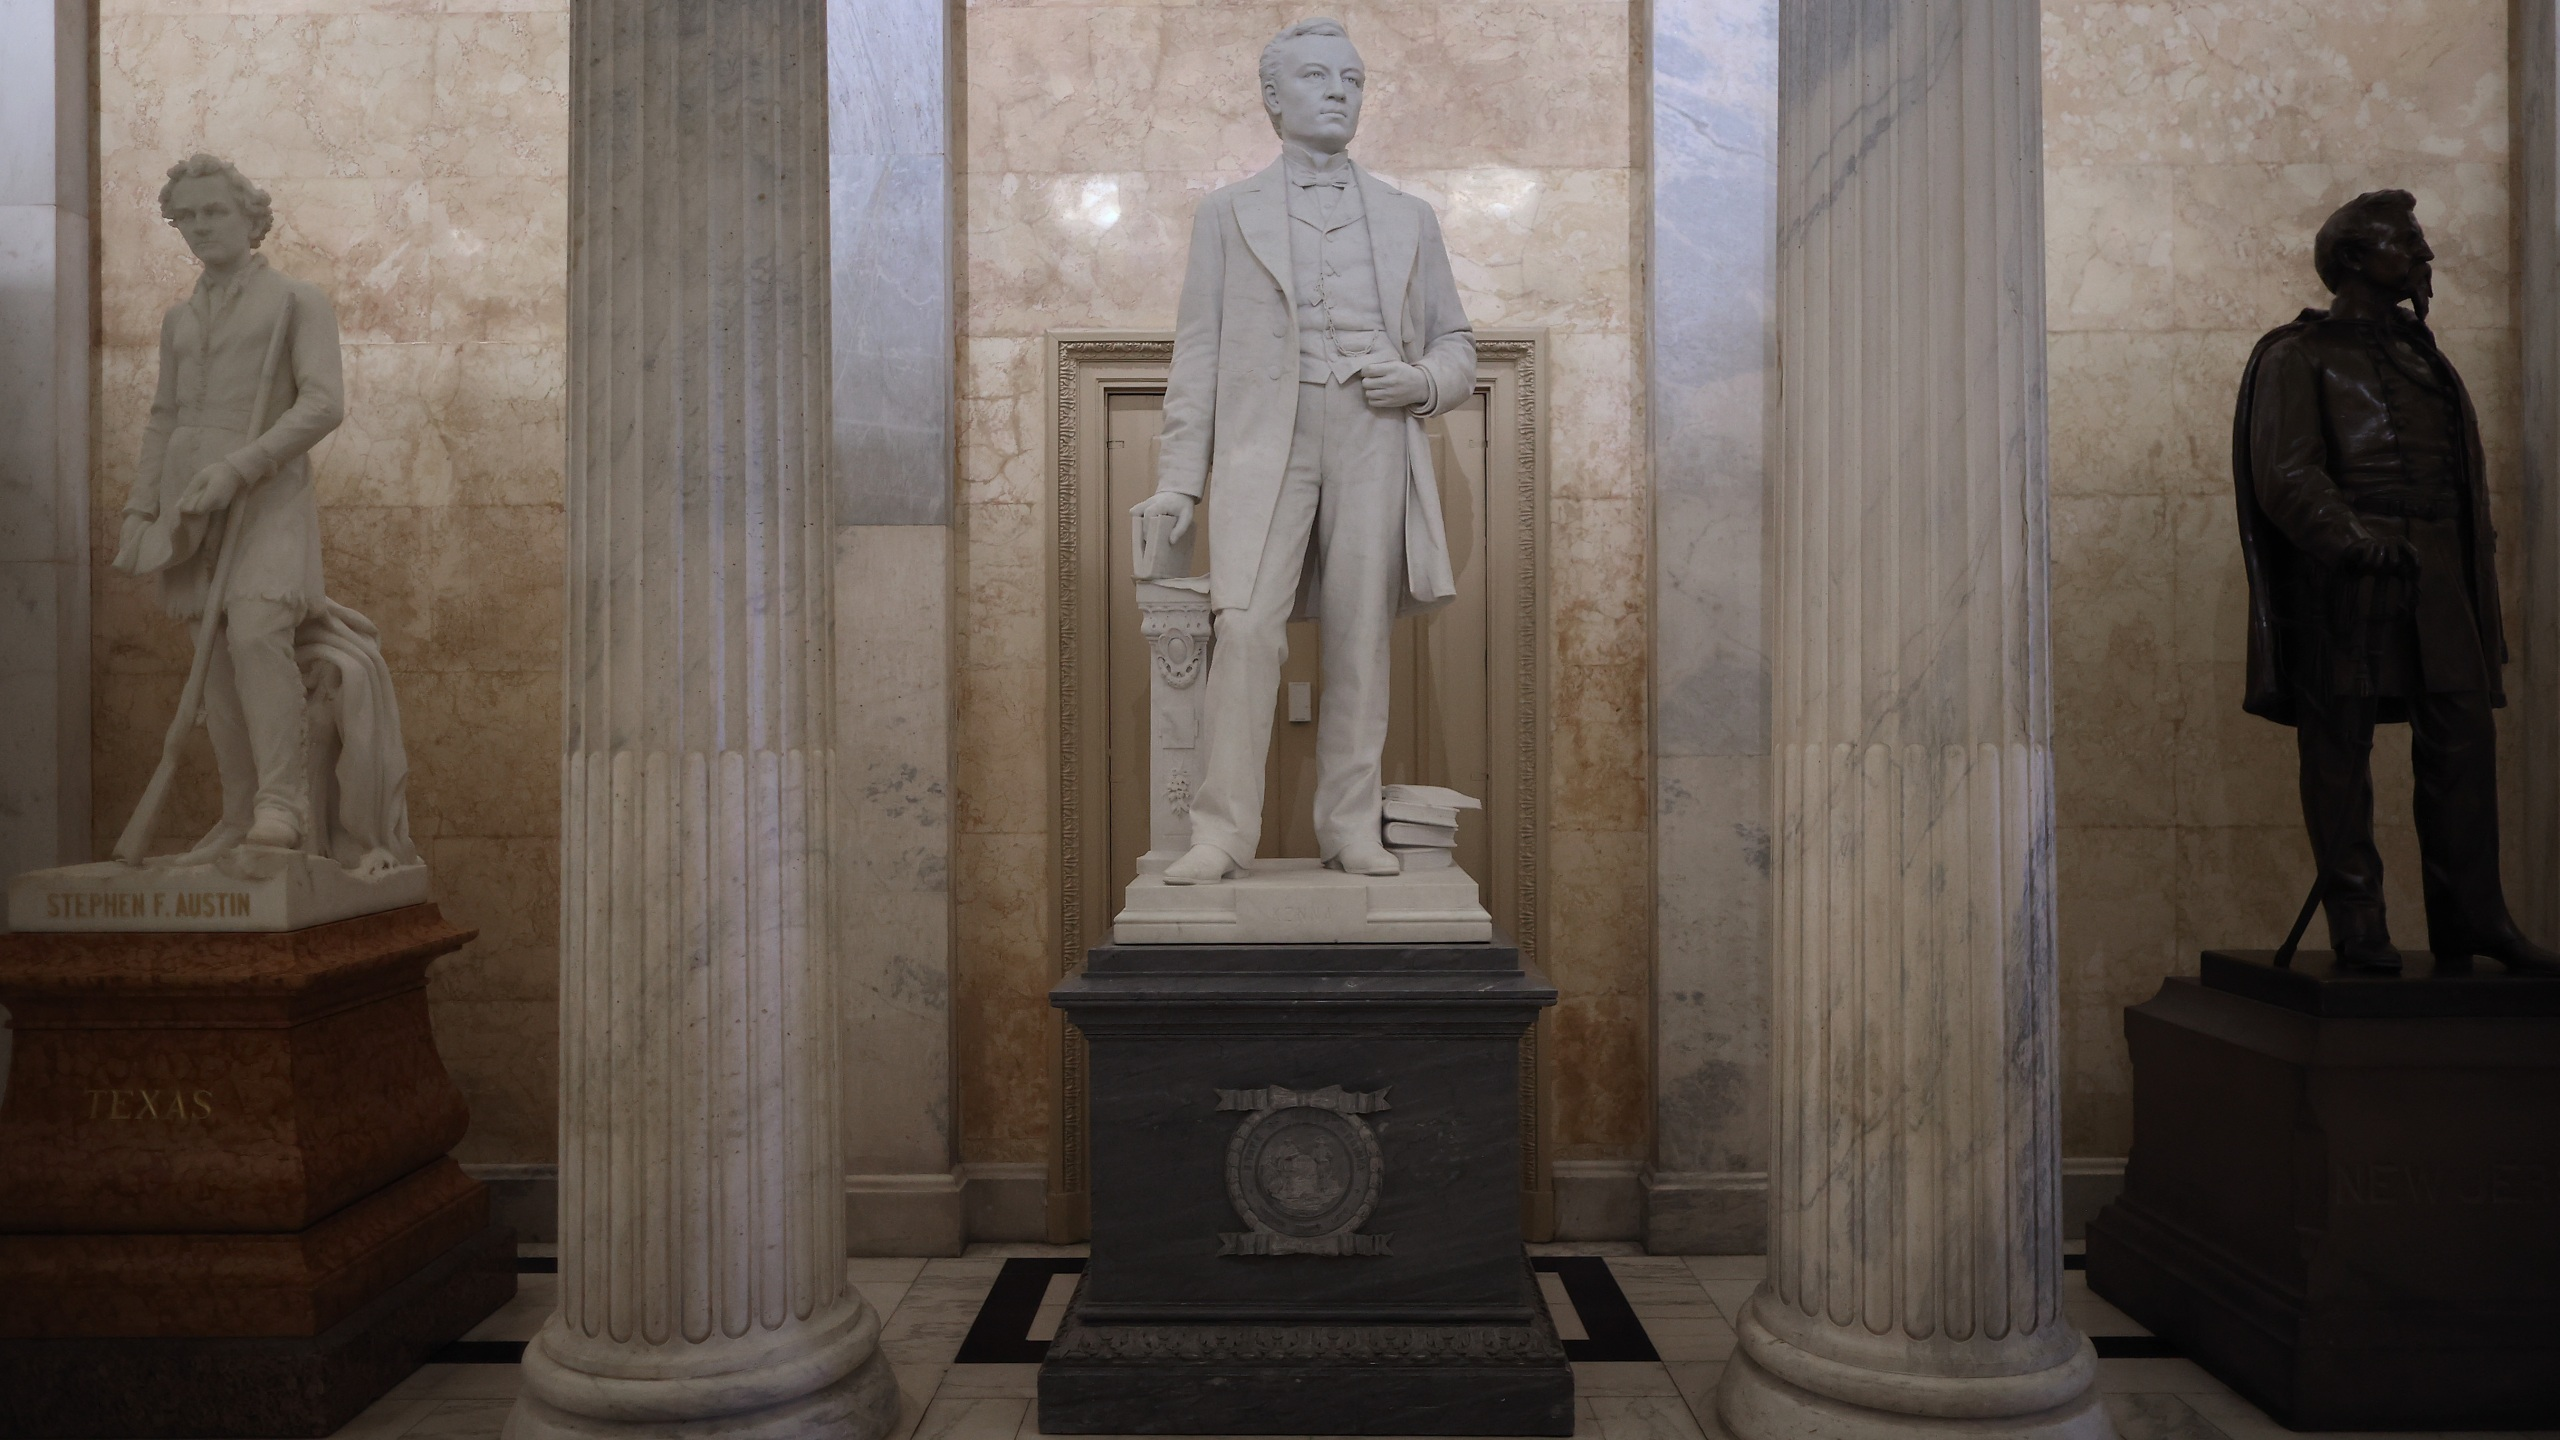 A statue of John E. Kenna, a Confederate soldier from West Virginia and U.S. Senator after the Civil War, is on display in the U.S. Capitol Hall of Columns June 18, 2020, in Washington, D.C. (Chip Somodevilla/Getty Images)